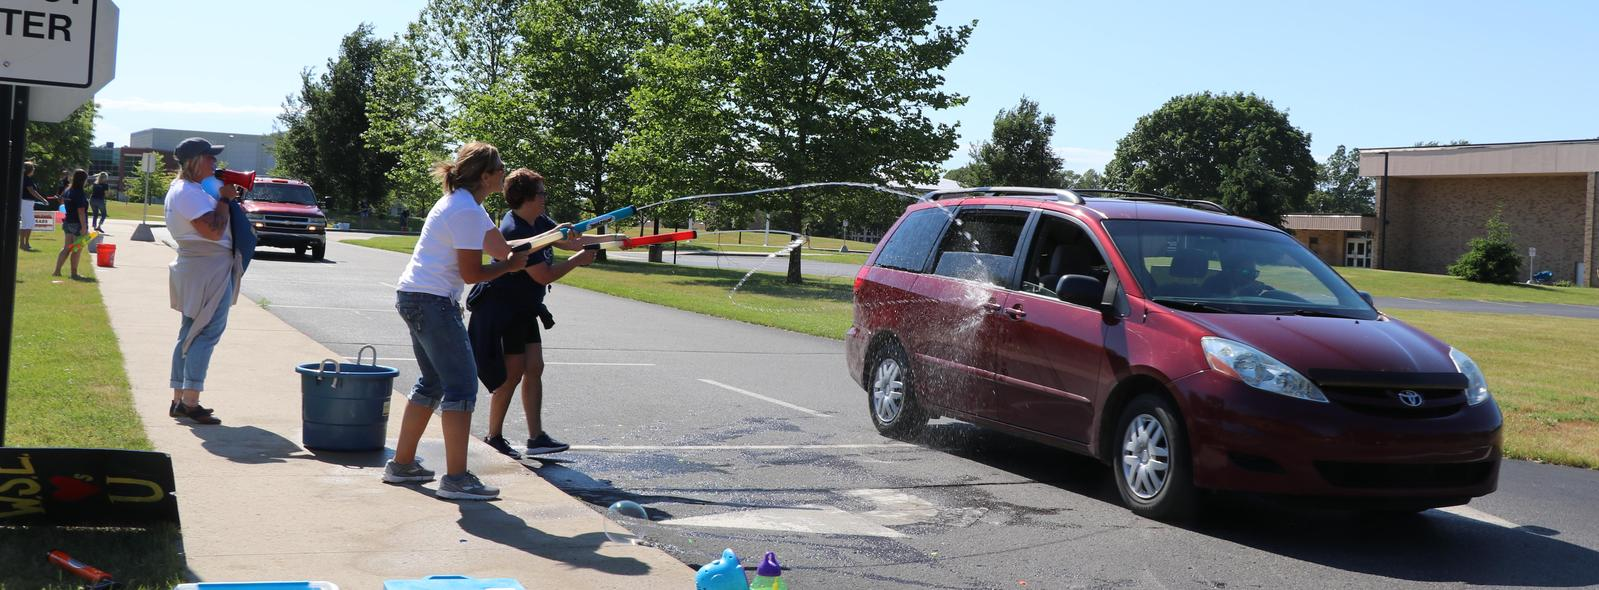 a car gets sprayed with a super soaker during the end of the year parade